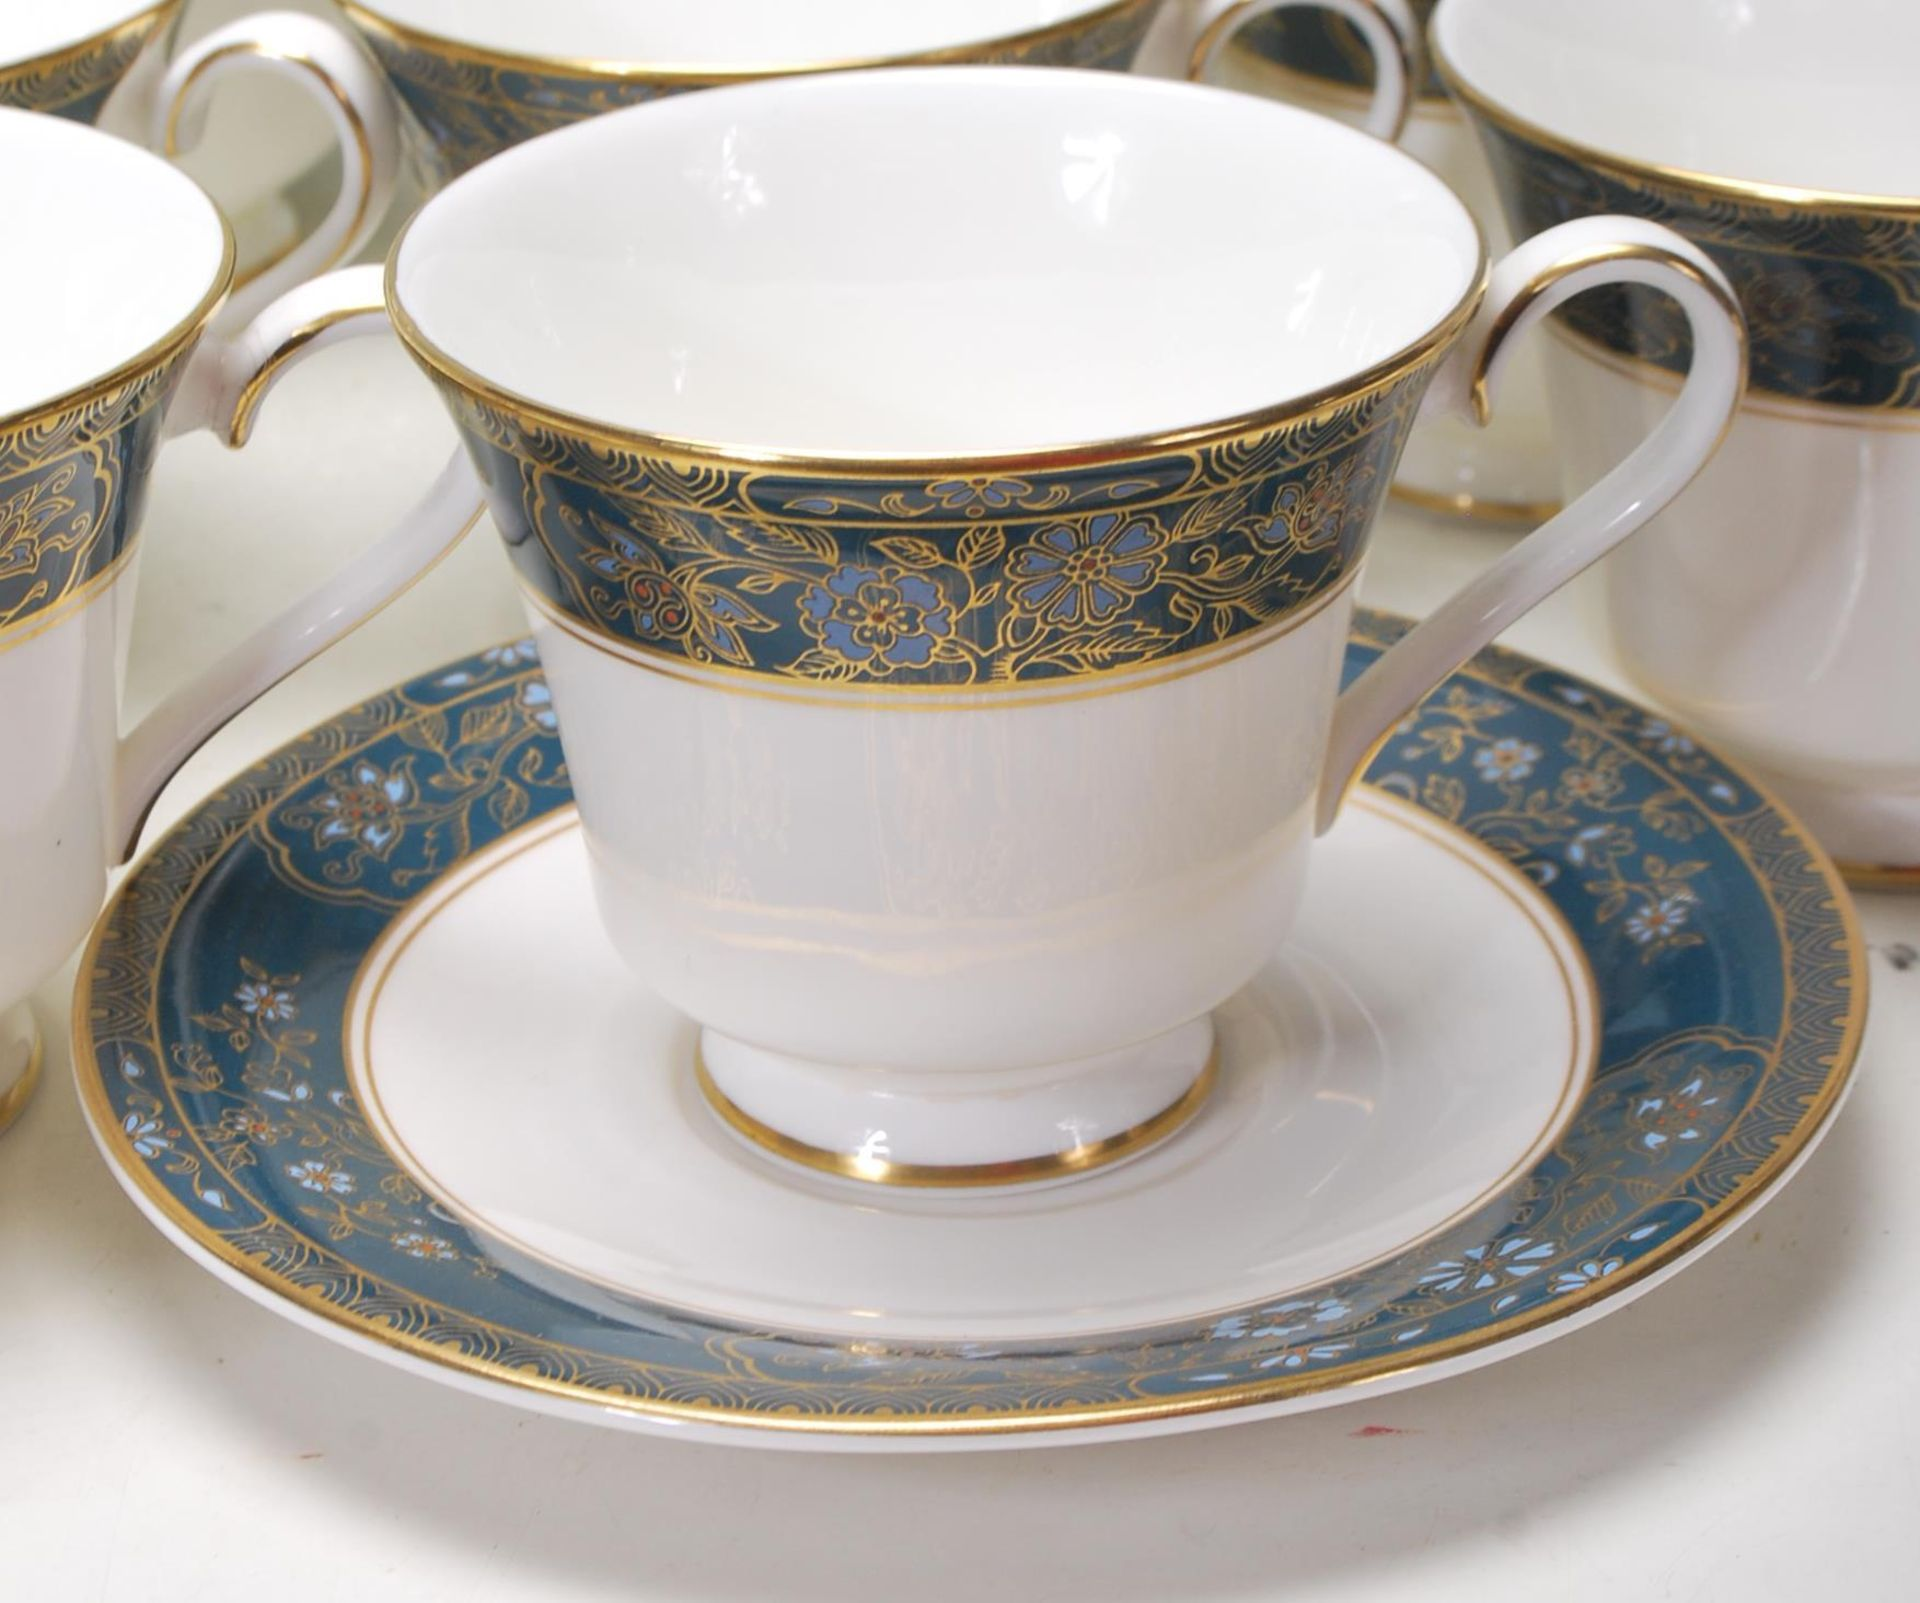 COLLECTION OF LATE 20TH CENTORUY ROYAL DOULTON FINE BONE CHINA DINNER SERVICE - Image 4 of 8